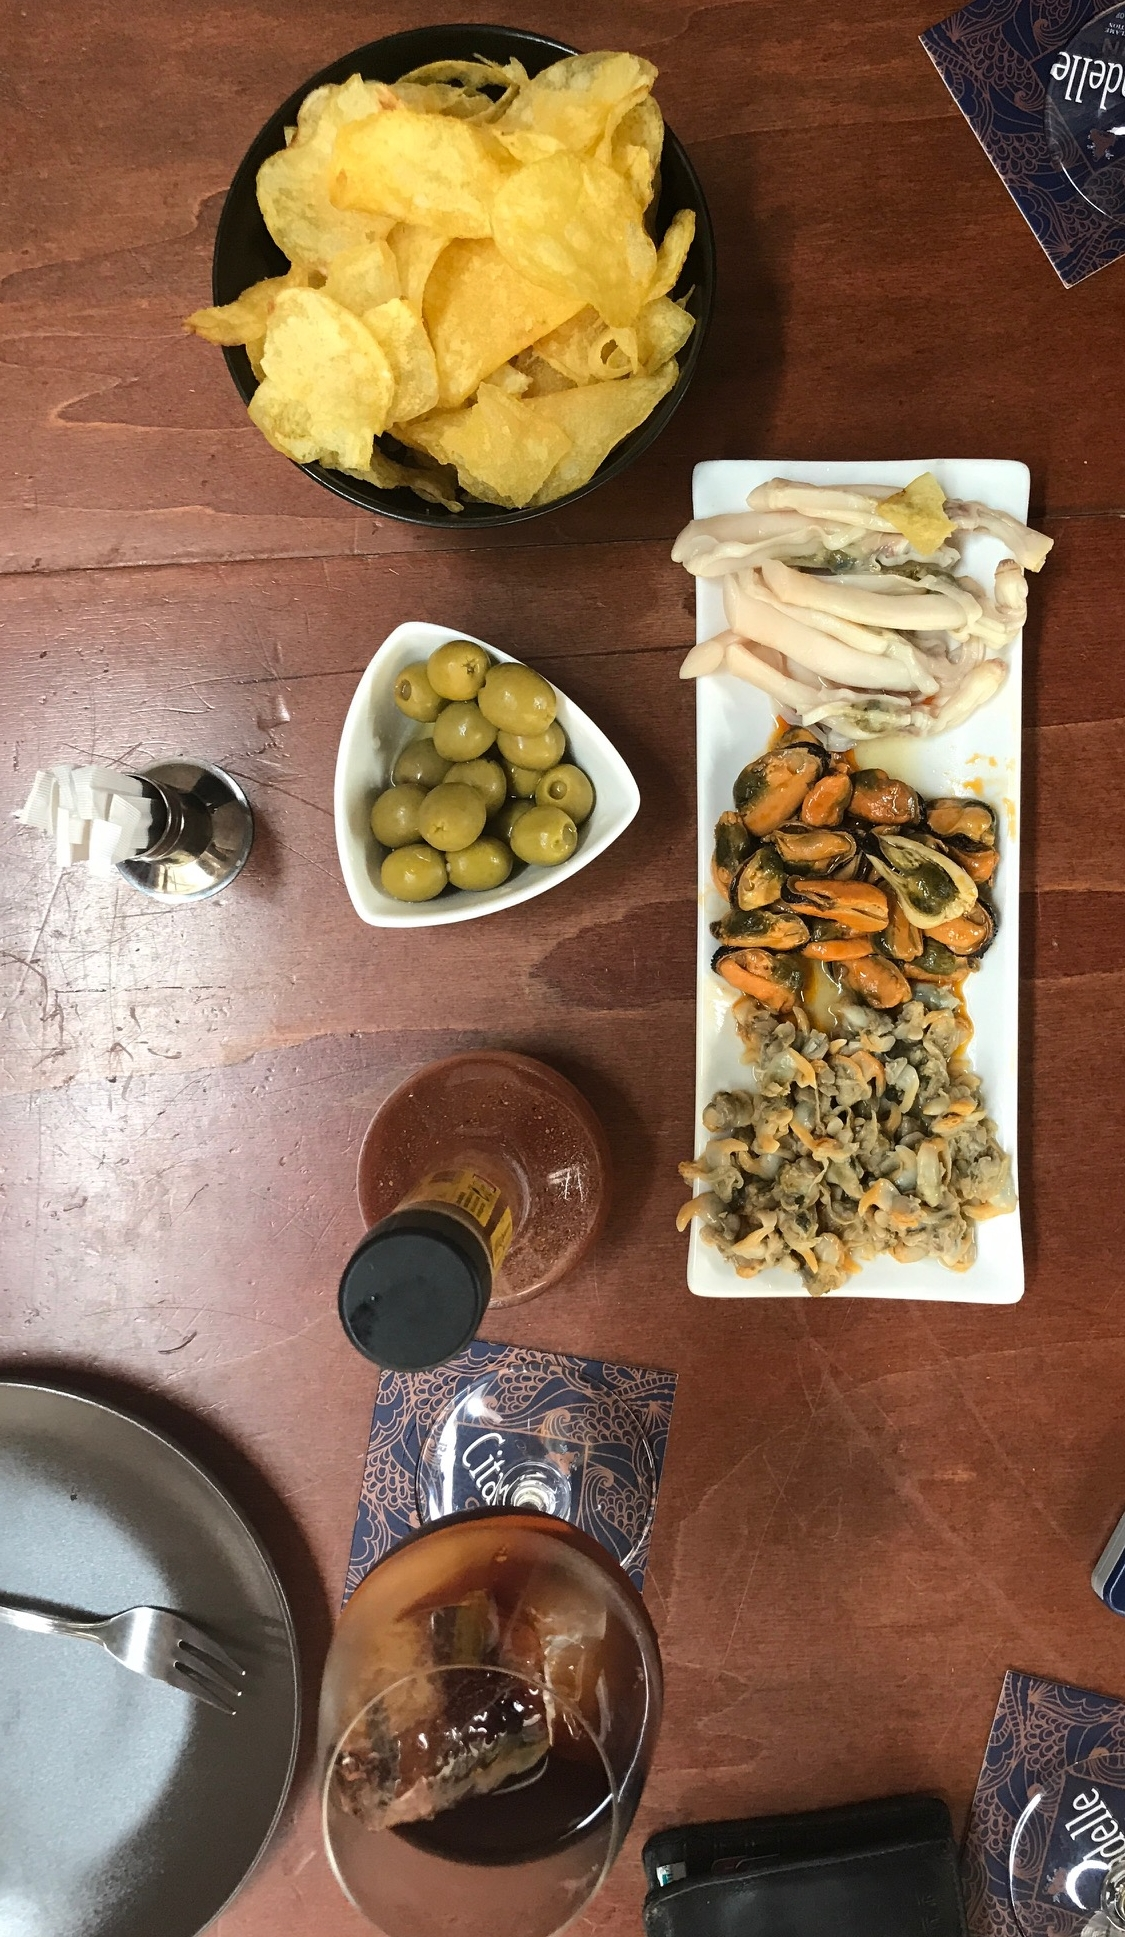 A simple pica-pica spread: selection of seafood conservas, olives, potato crisps and a refreshing vermouth